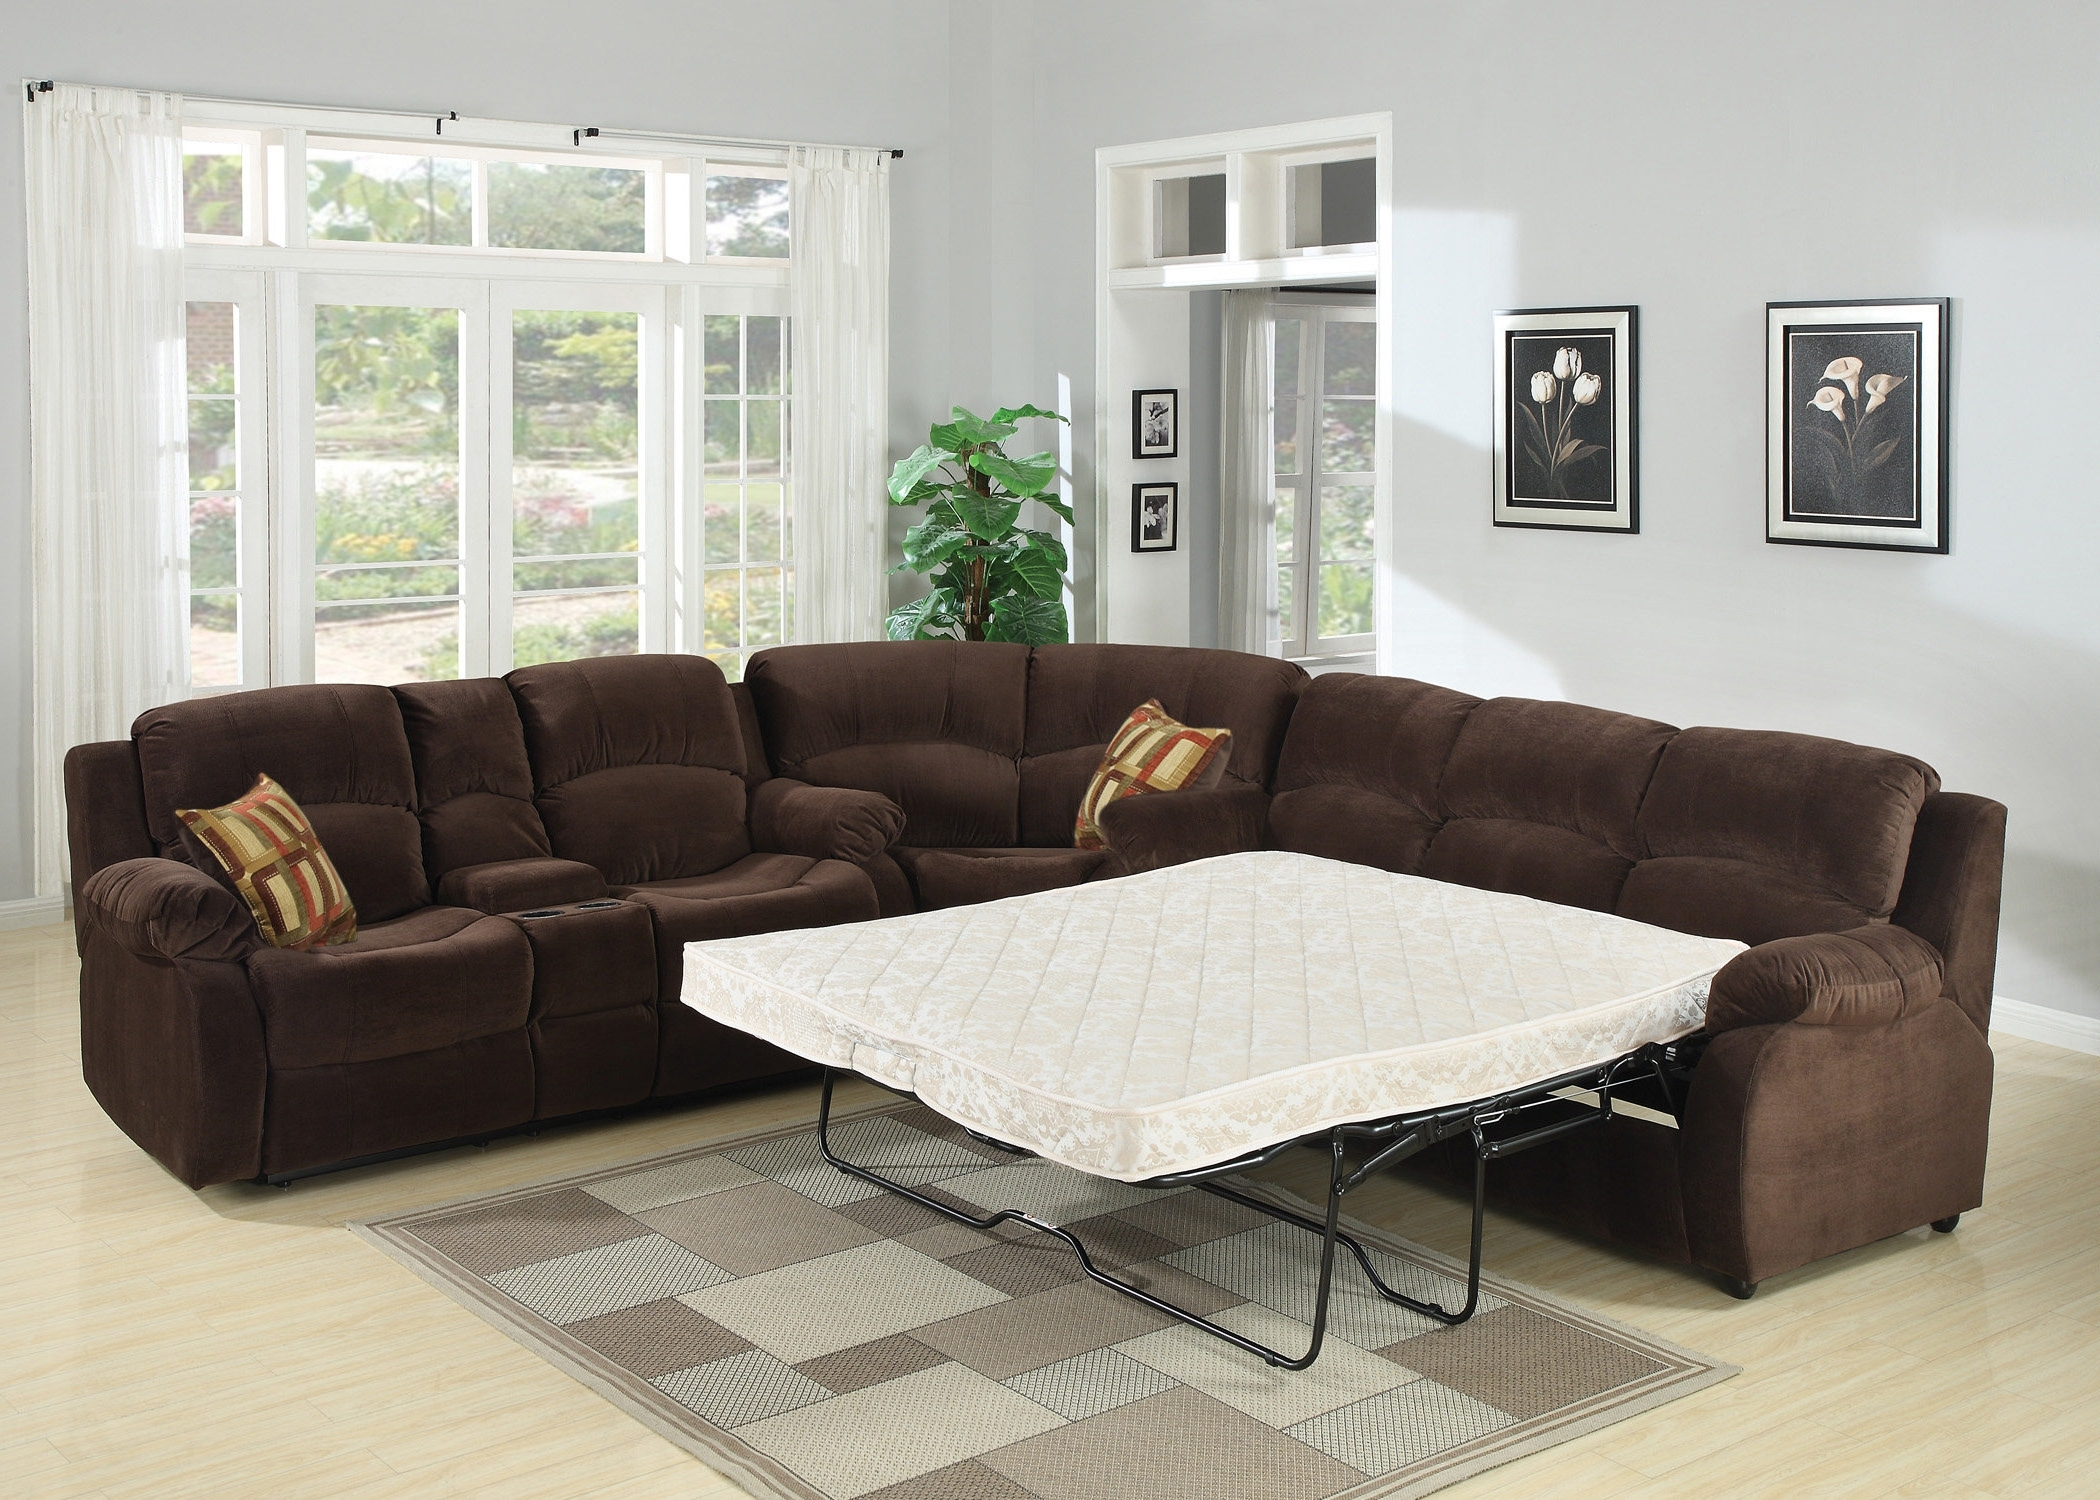 Wayfair With Regard To Most Popular Adjustable Sectional Sofas With Queen Bed (View 19 of 20)